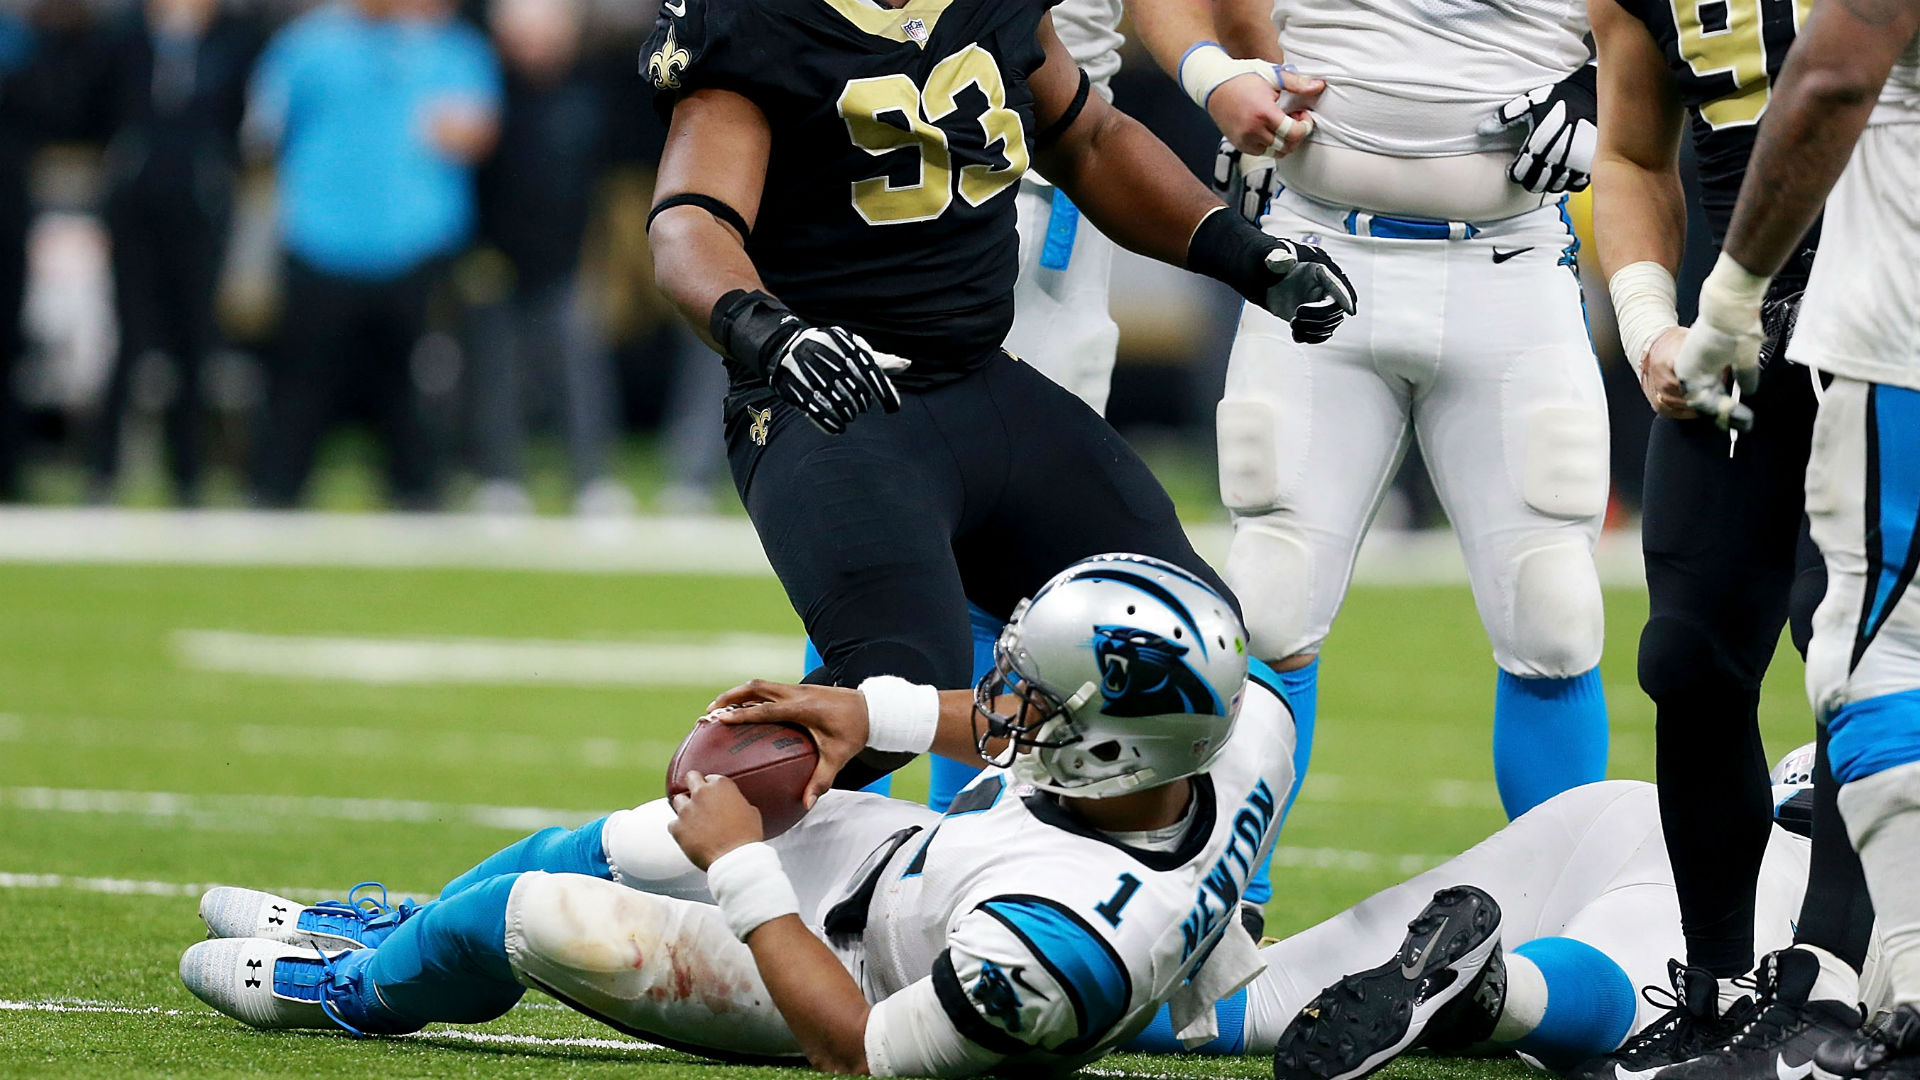 National Football League officials to review if Panthers followed concussion protocol